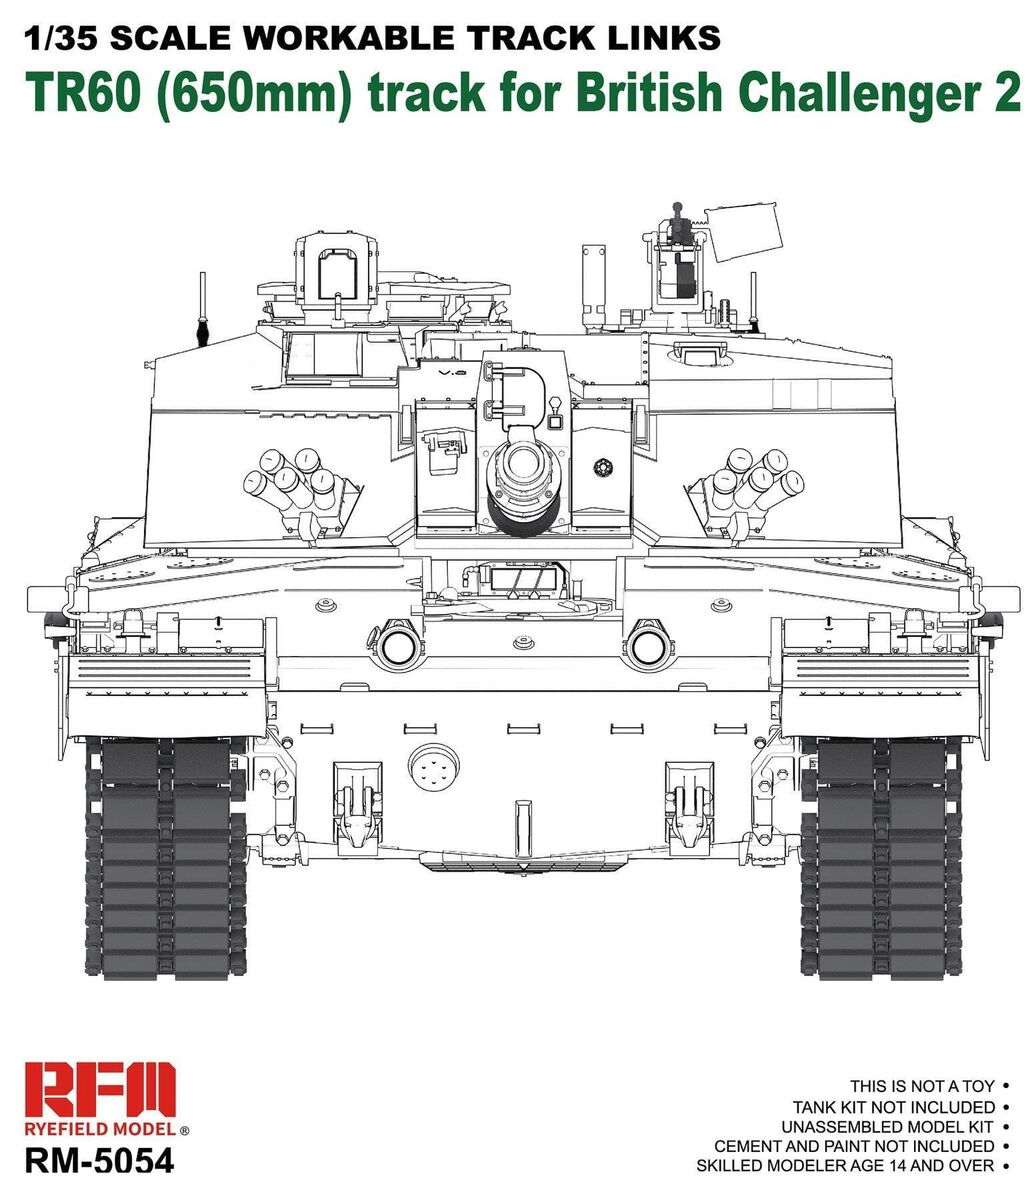 TR60 (650mm) track for British Challenger 2 - Image 1